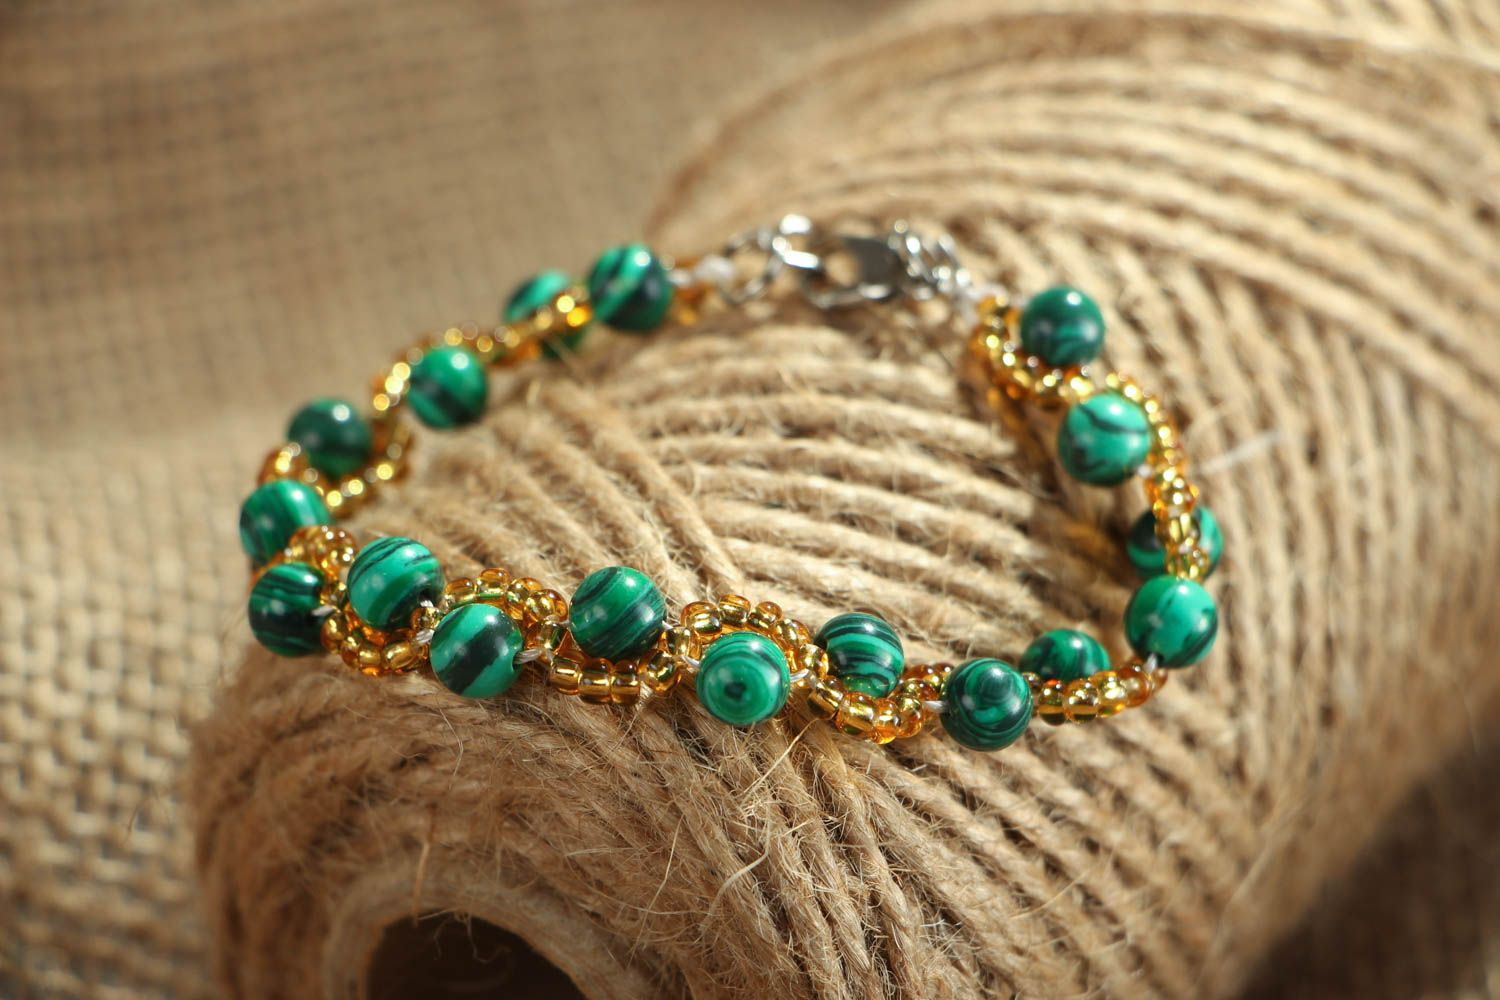 Wrist bracelet with malachite photo 4